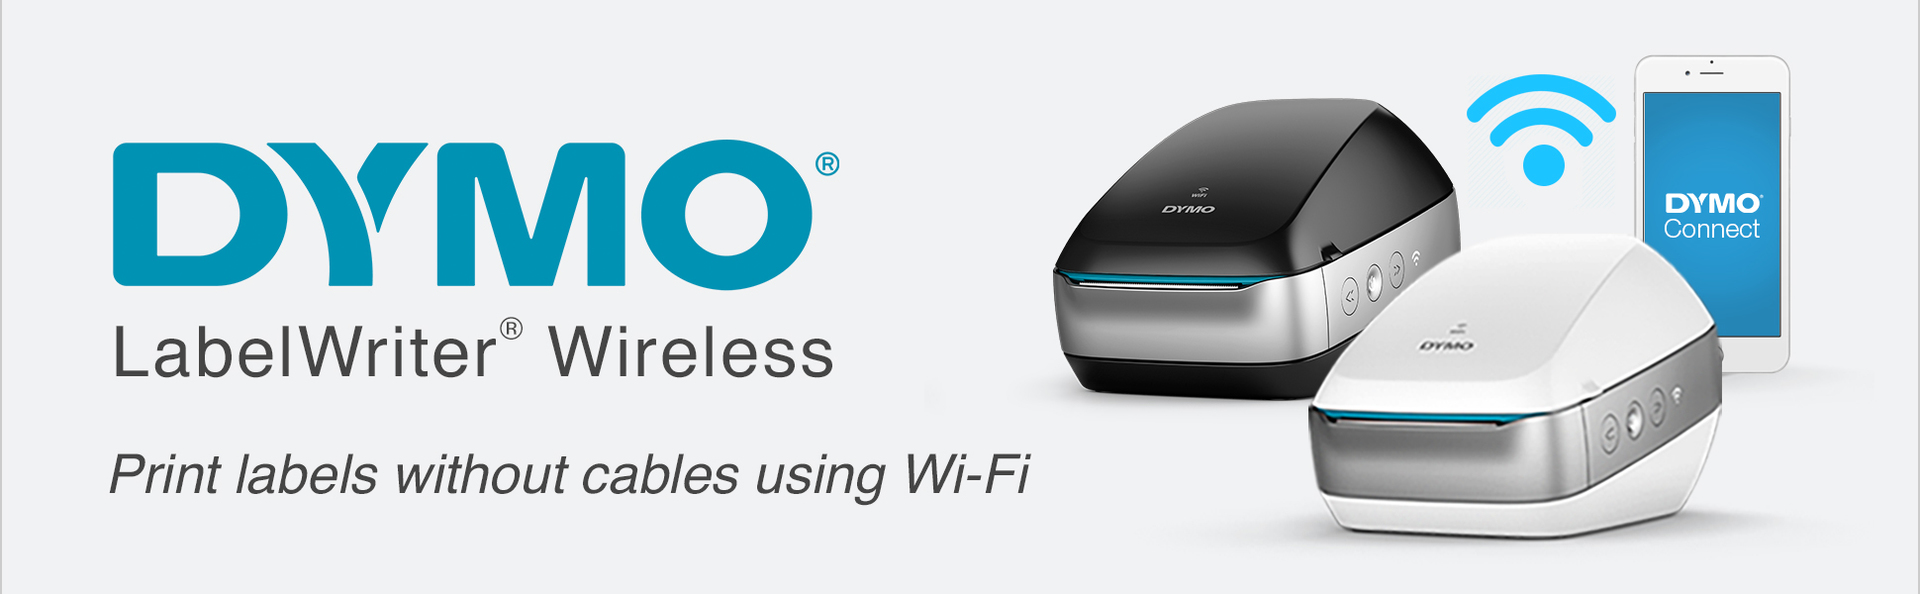 DYMO LabelWriter Wireless Print labels without cables using Wi-Fi